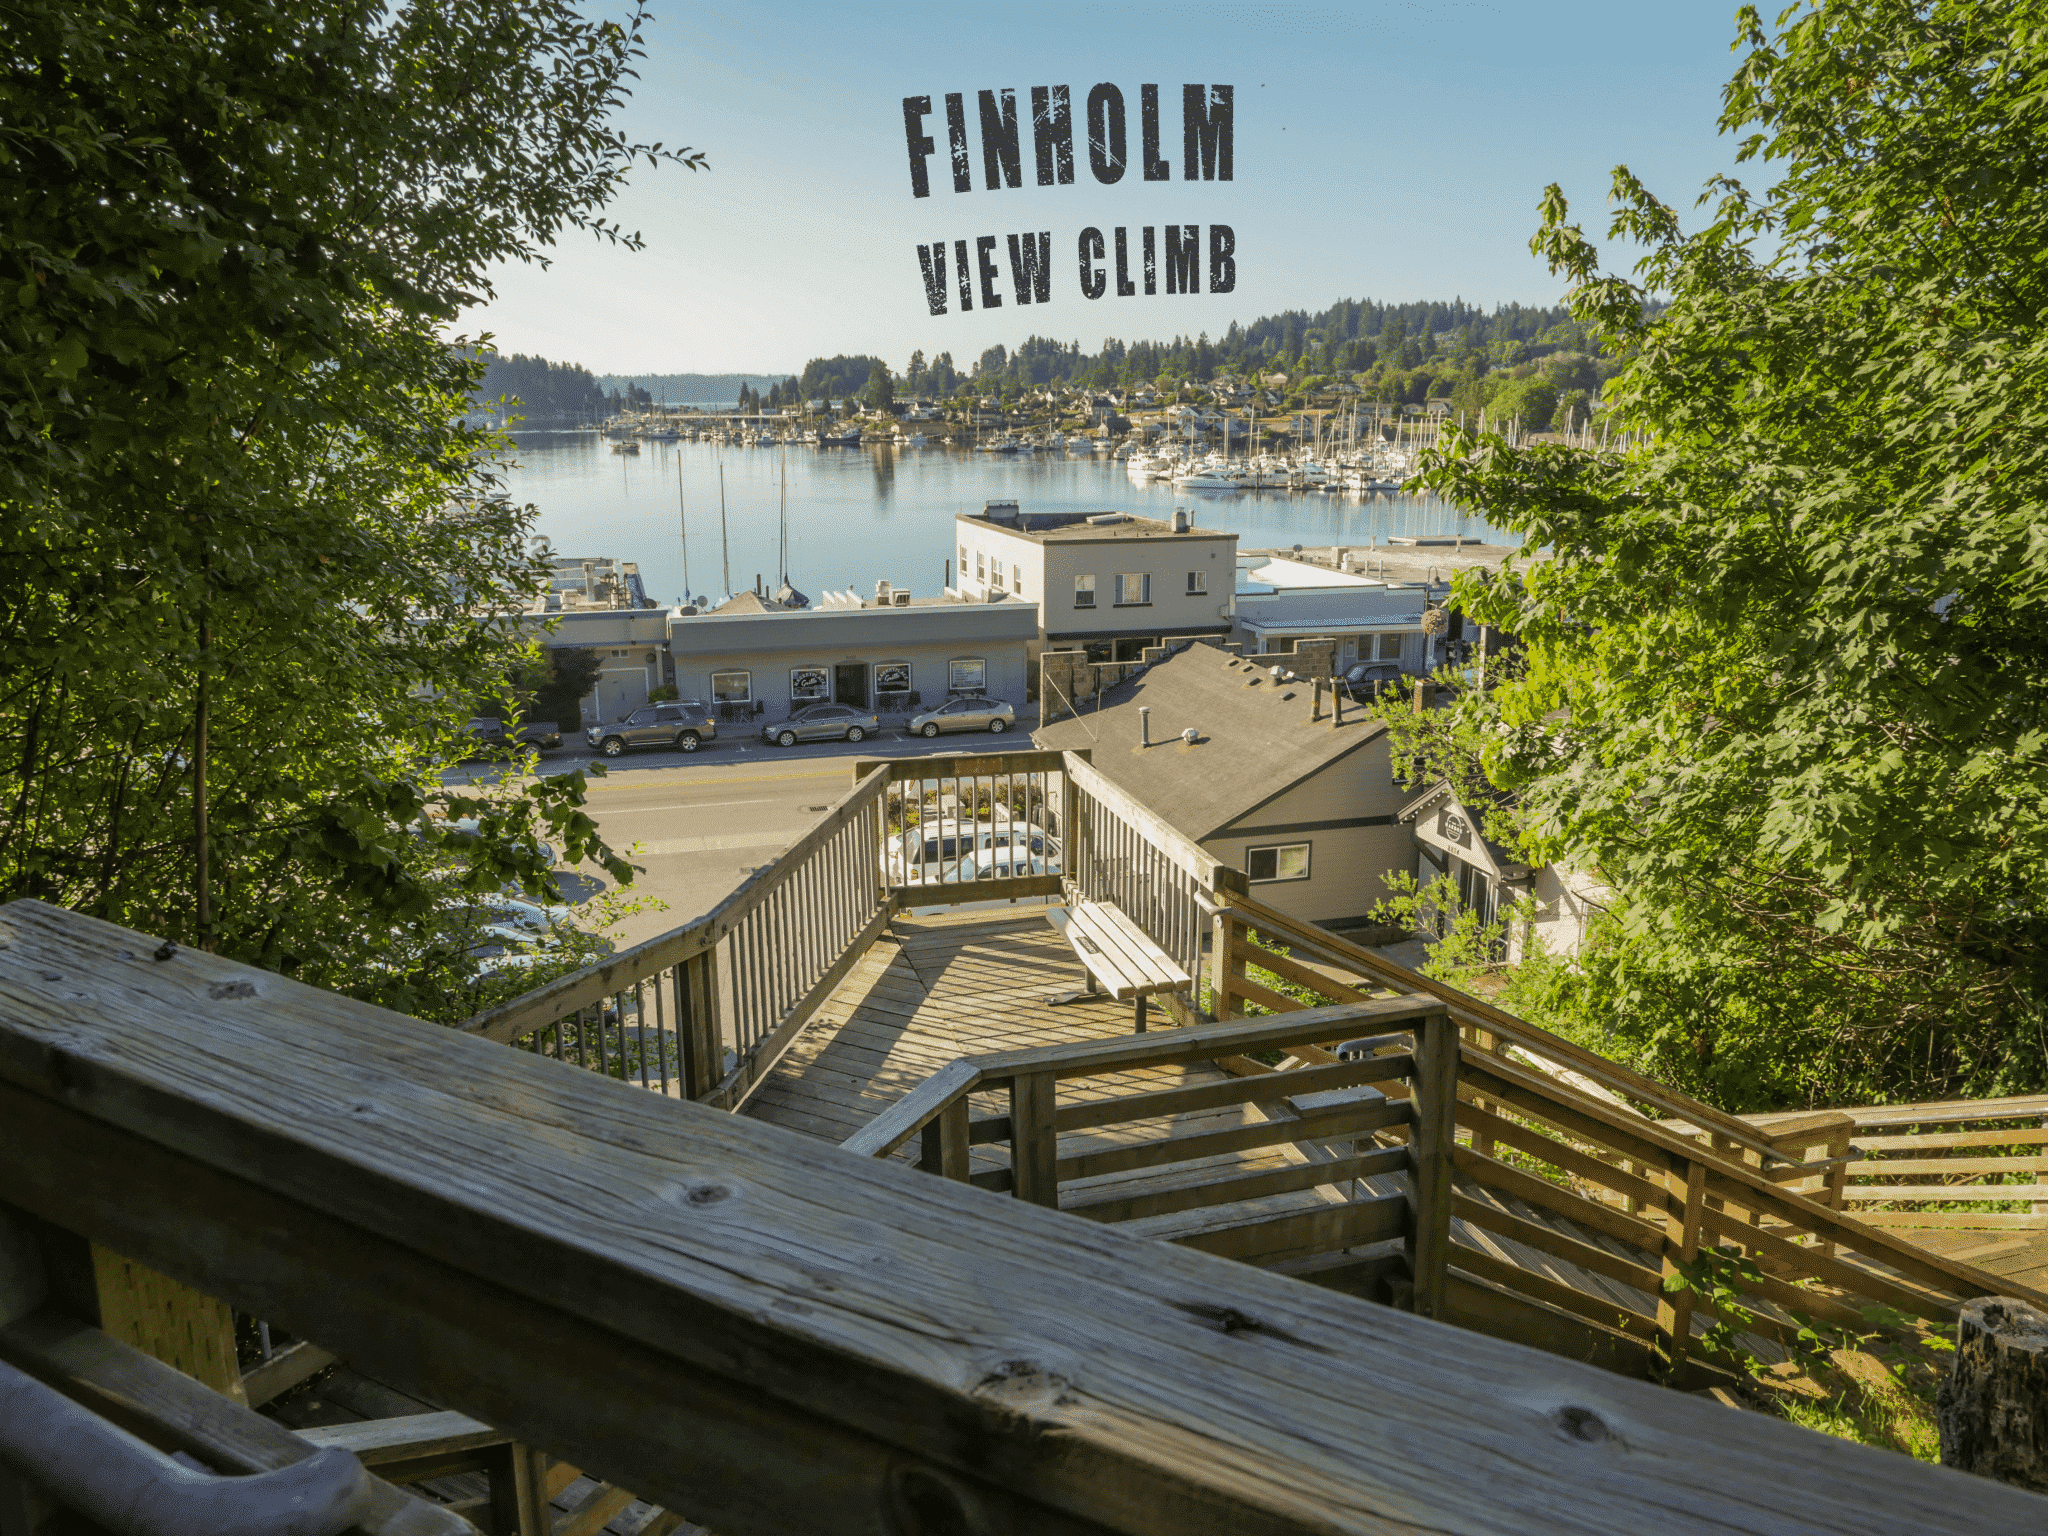 Finholm View Climb provides an excellent view of Gig Harbor